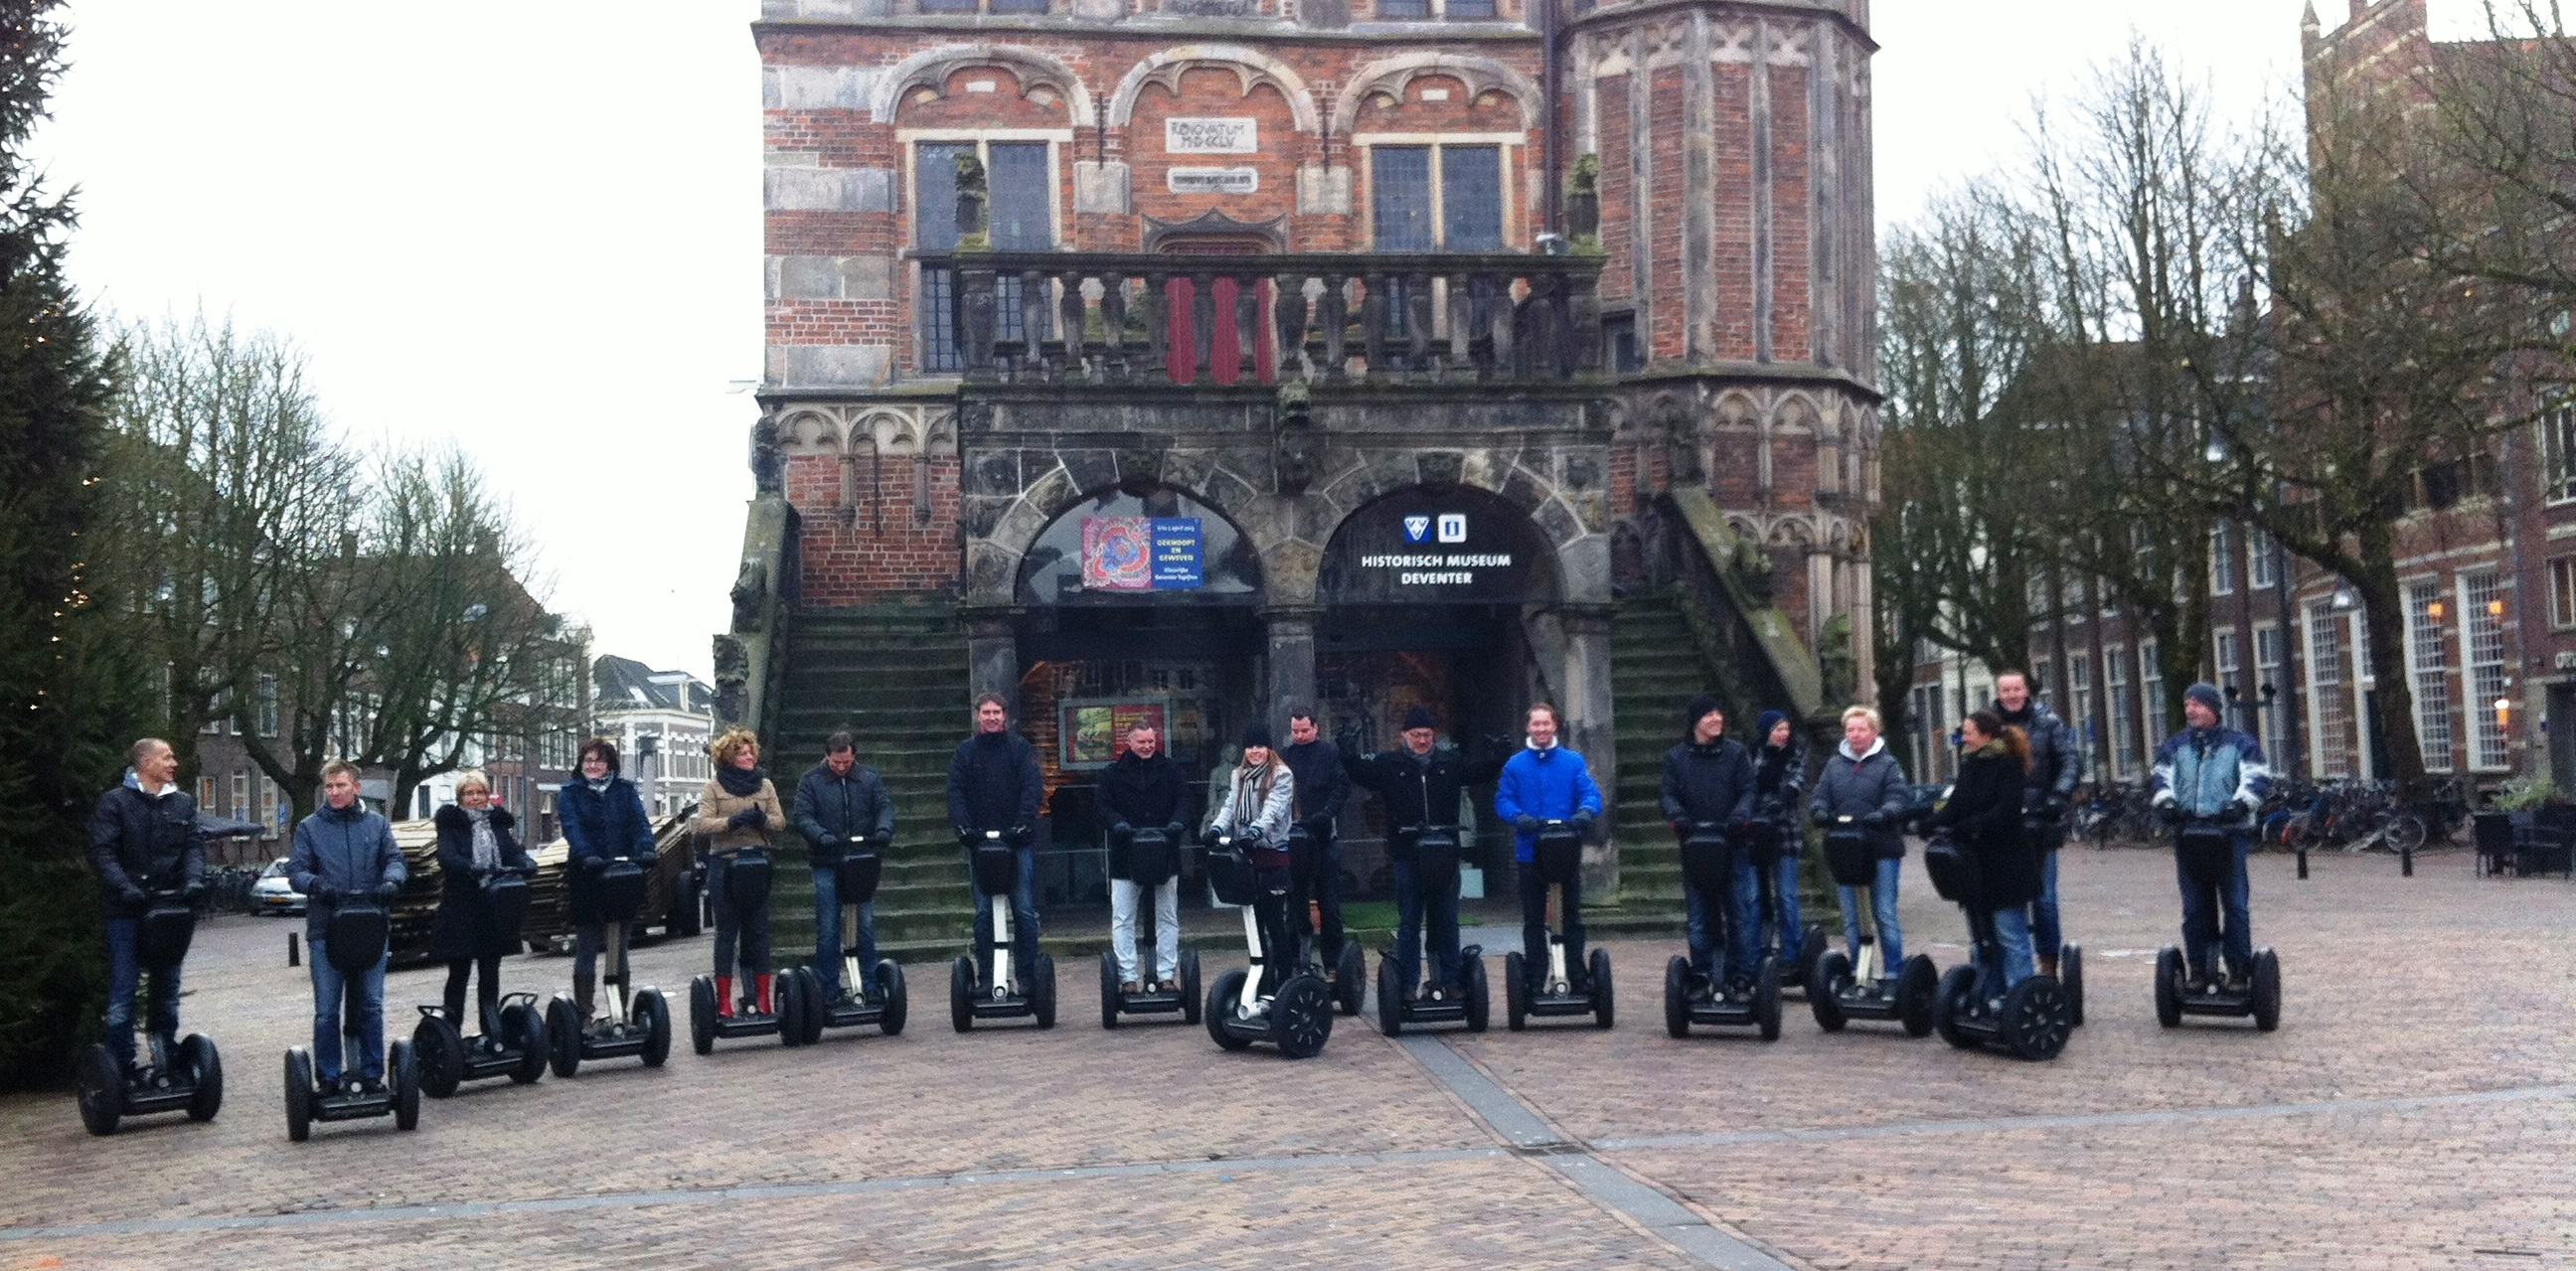 Segway tour Deventer, segway rijden door Deventer